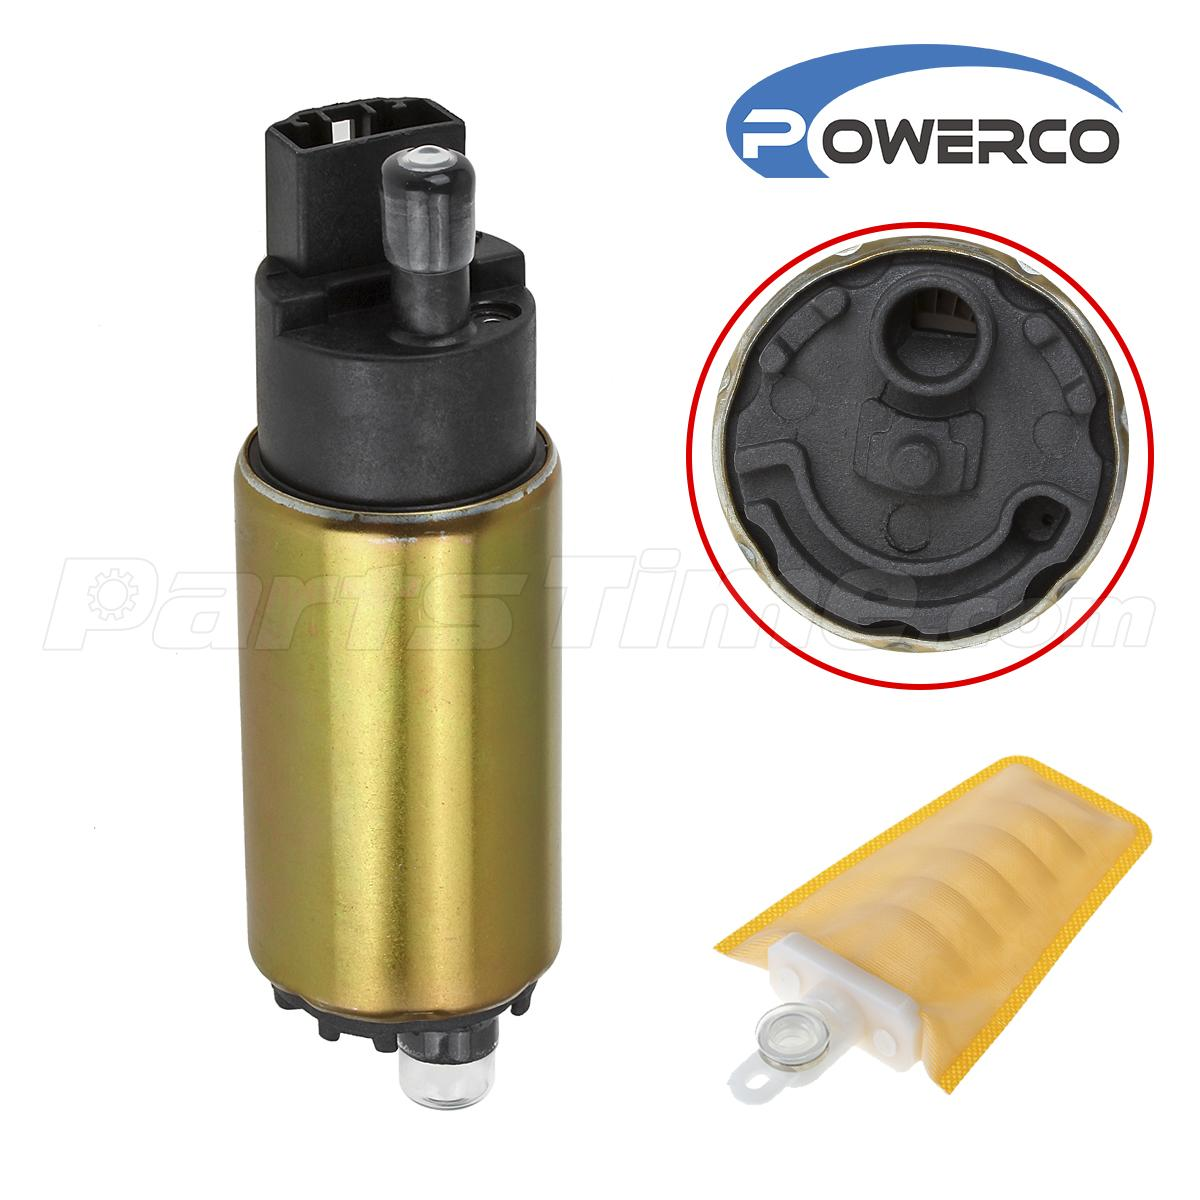 232210a030 gas fuel pump strainer for toyota solara rav4 corolla camry. Black Bedroom Furniture Sets. Home Design Ideas